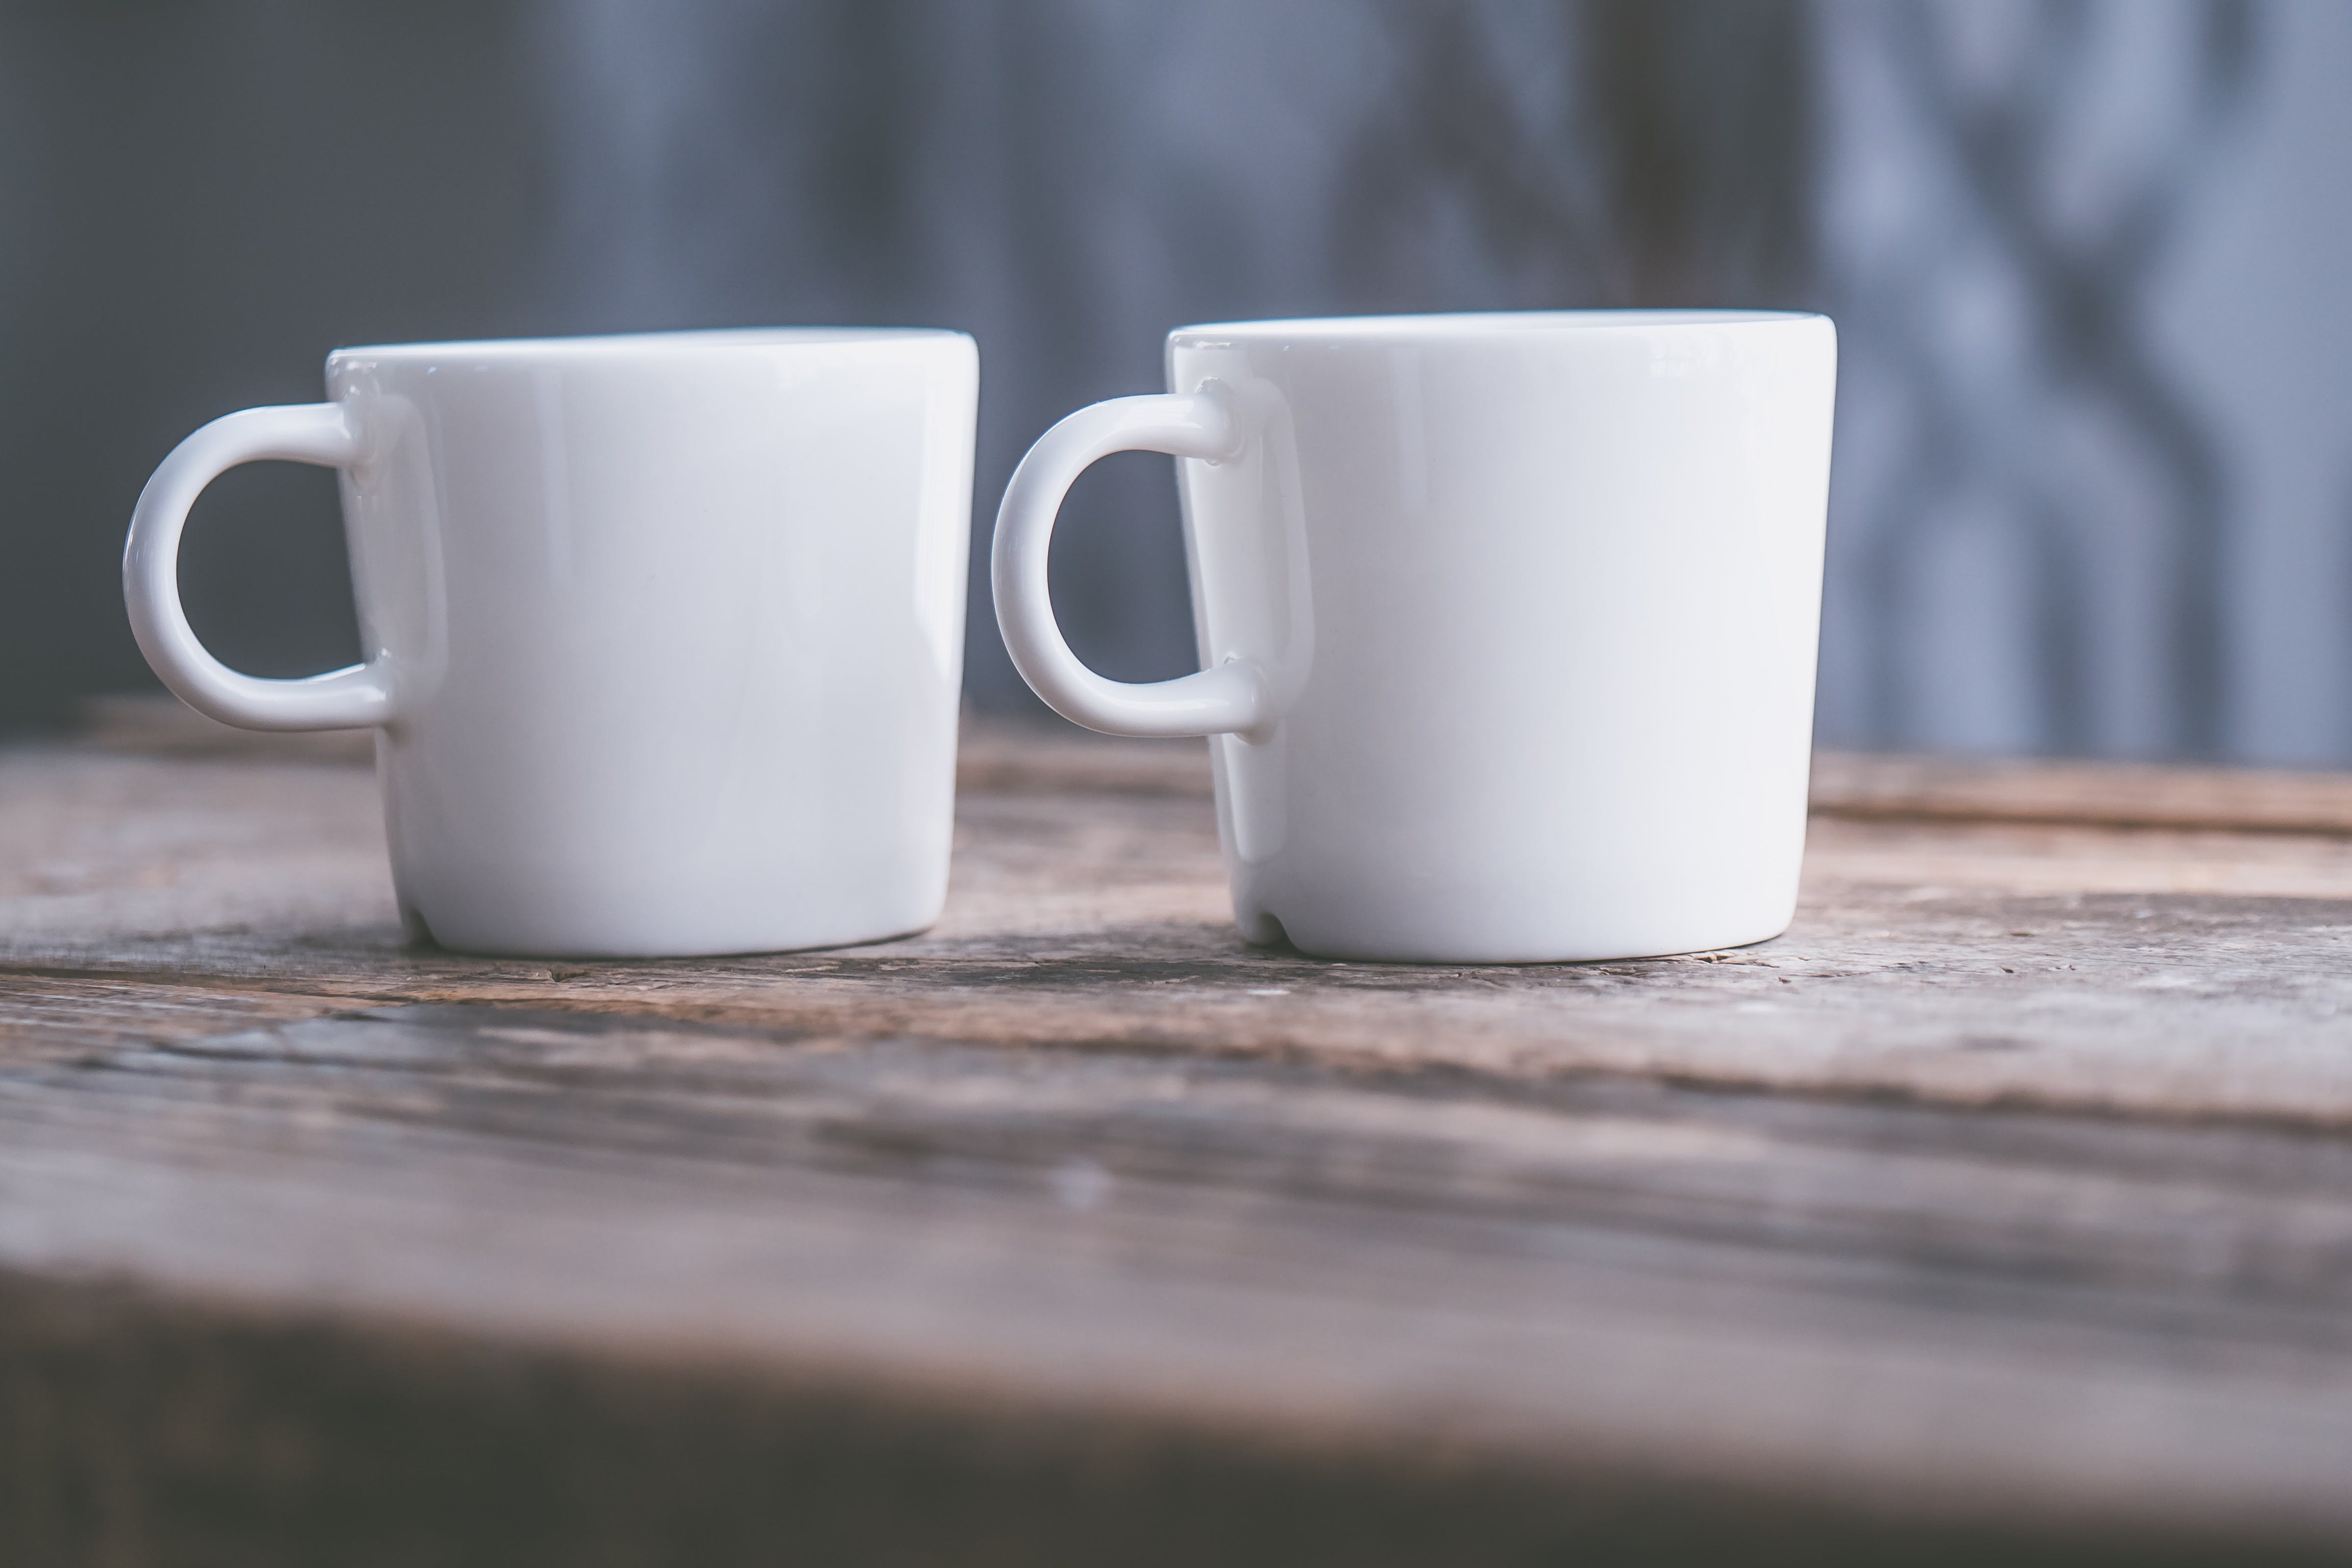 Two White Ceramic Mugs Shallow Focus Photography